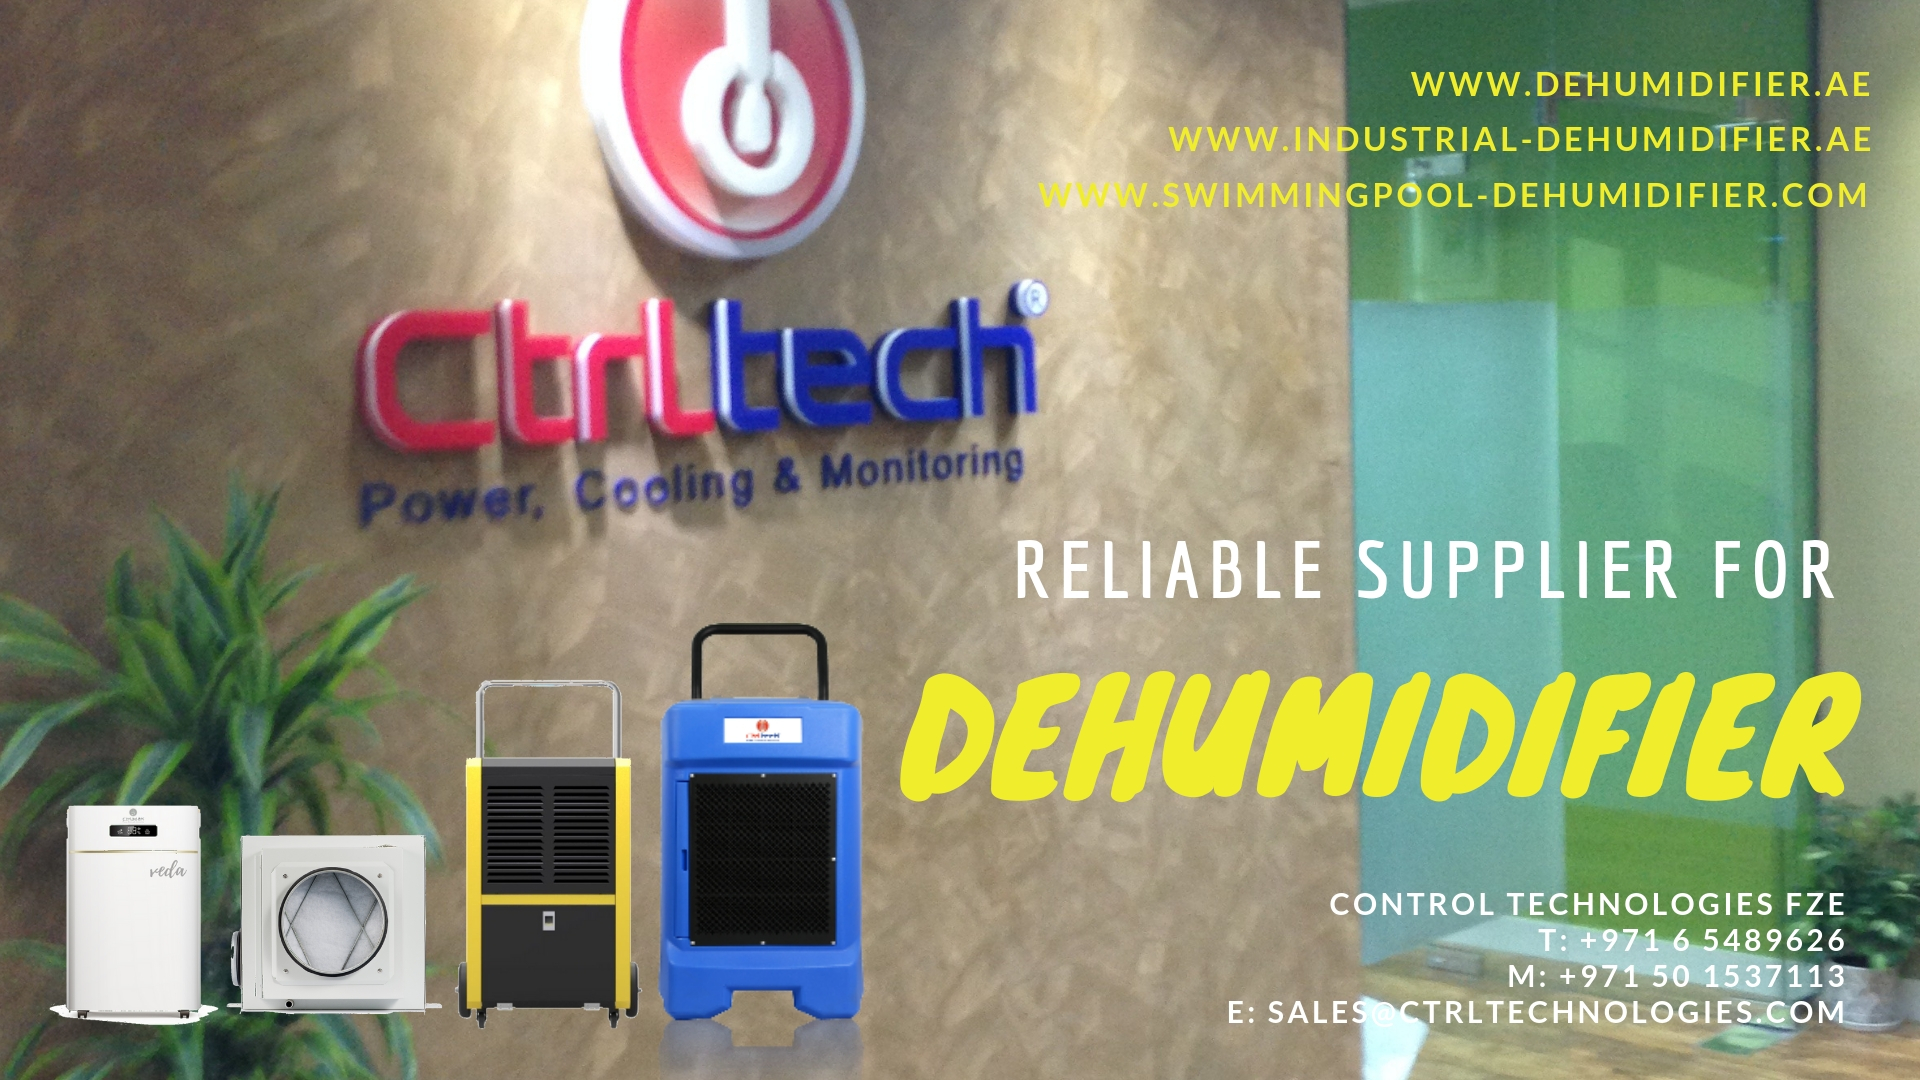 CtrlTech Takes Praise As The Leading Dehumidifier Supplier In The Middle East